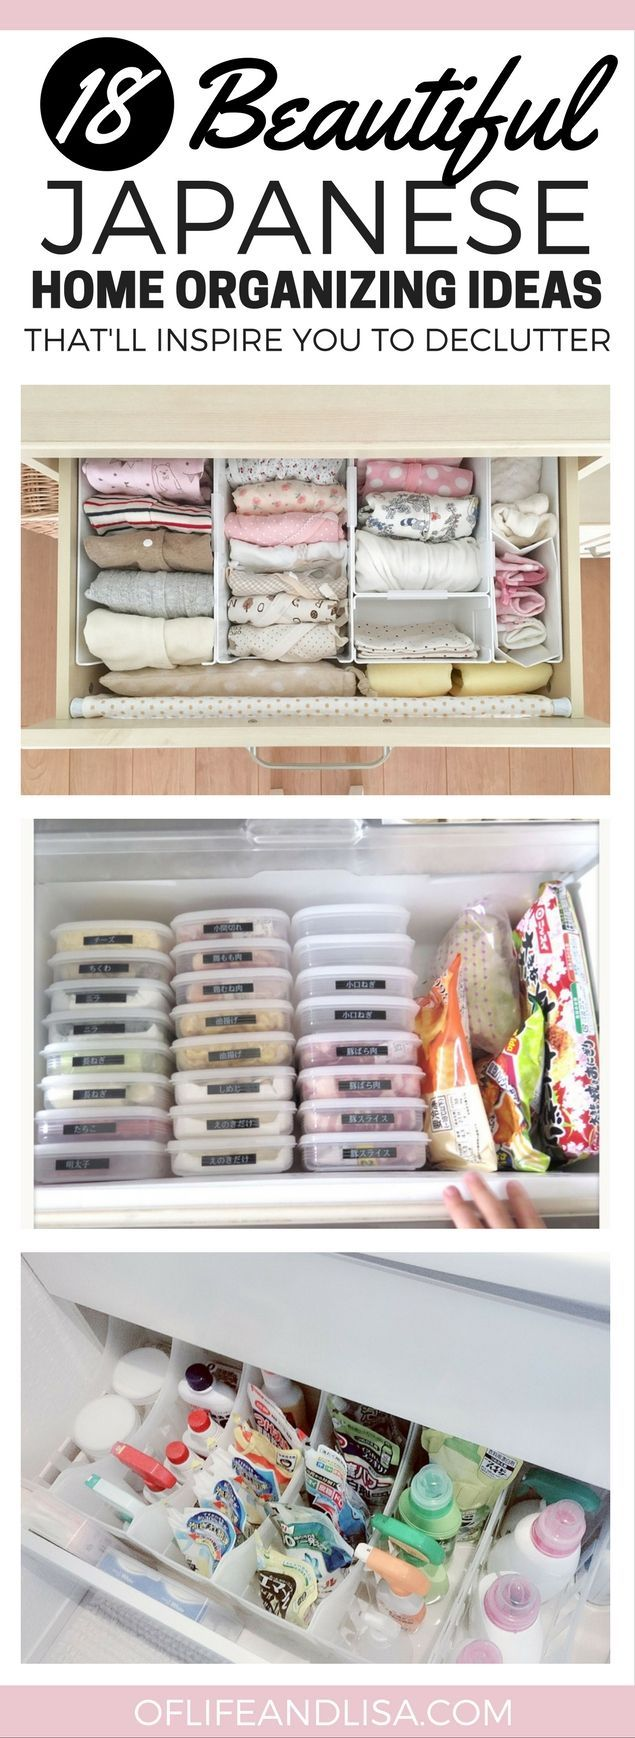 18 Completely Genius Home Organizing Hacks from Japan